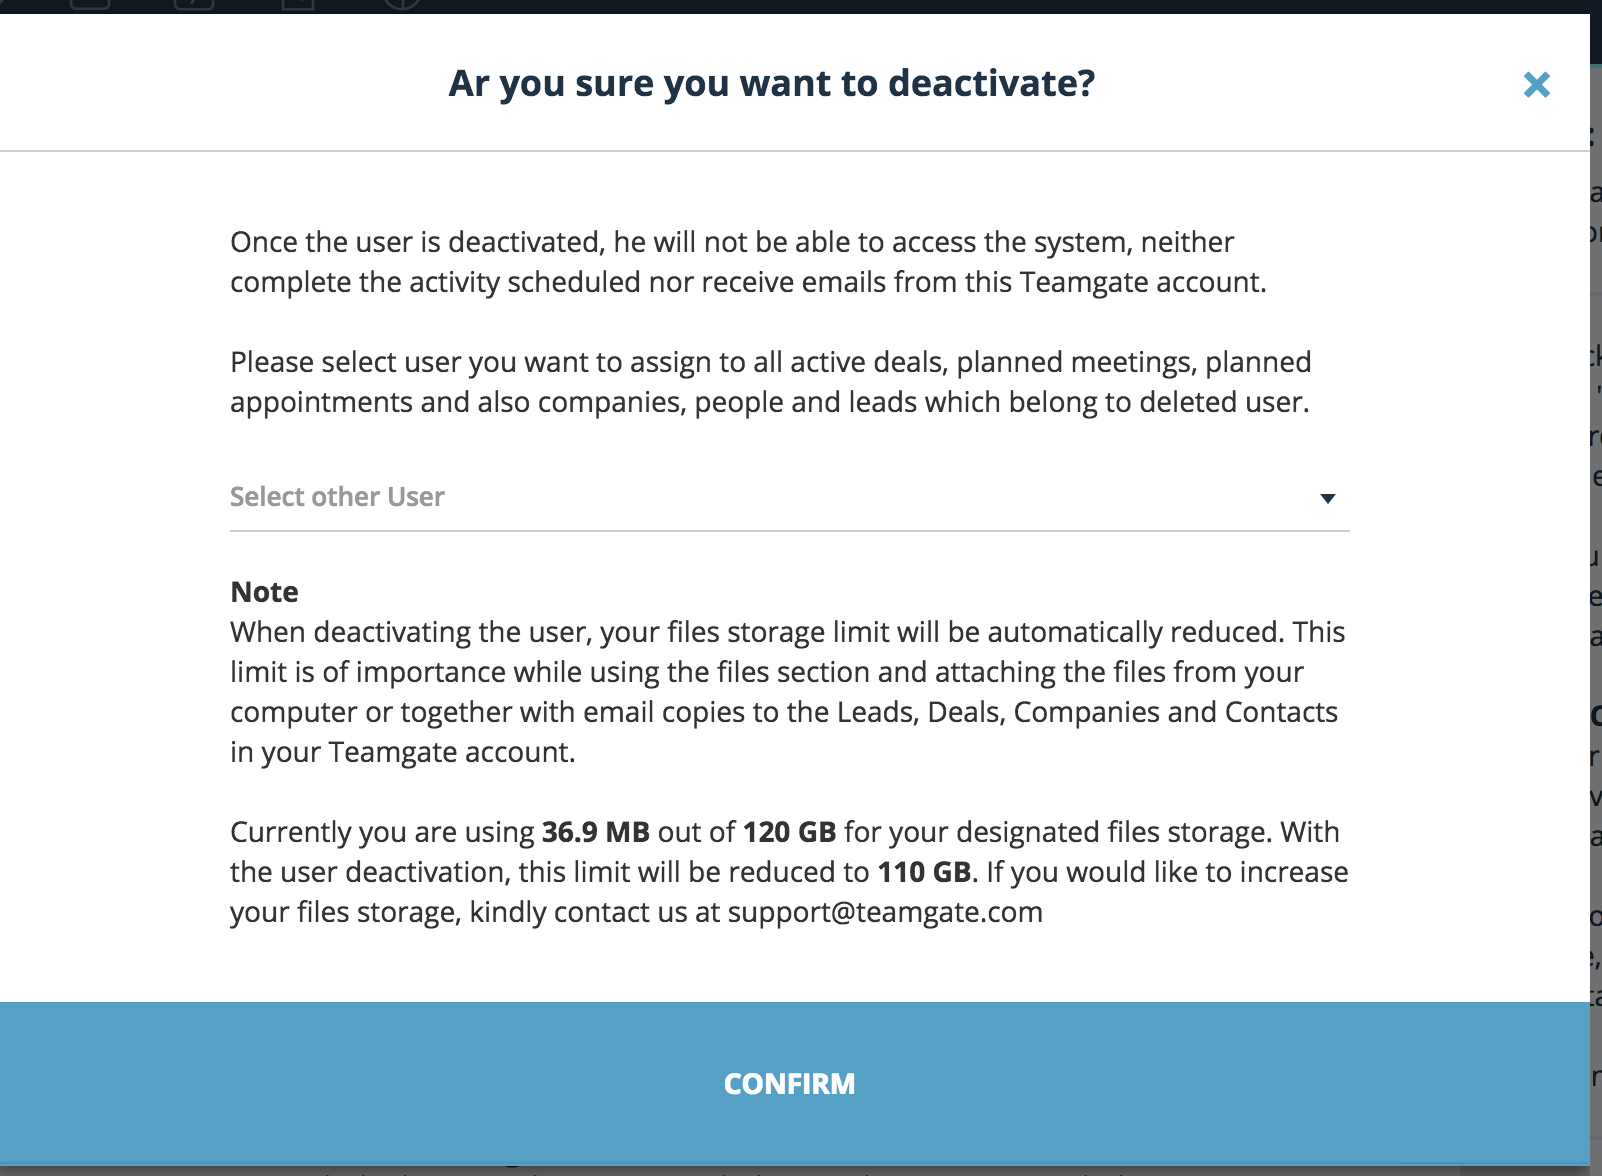 How to deactivate the user and reassign active tasks and